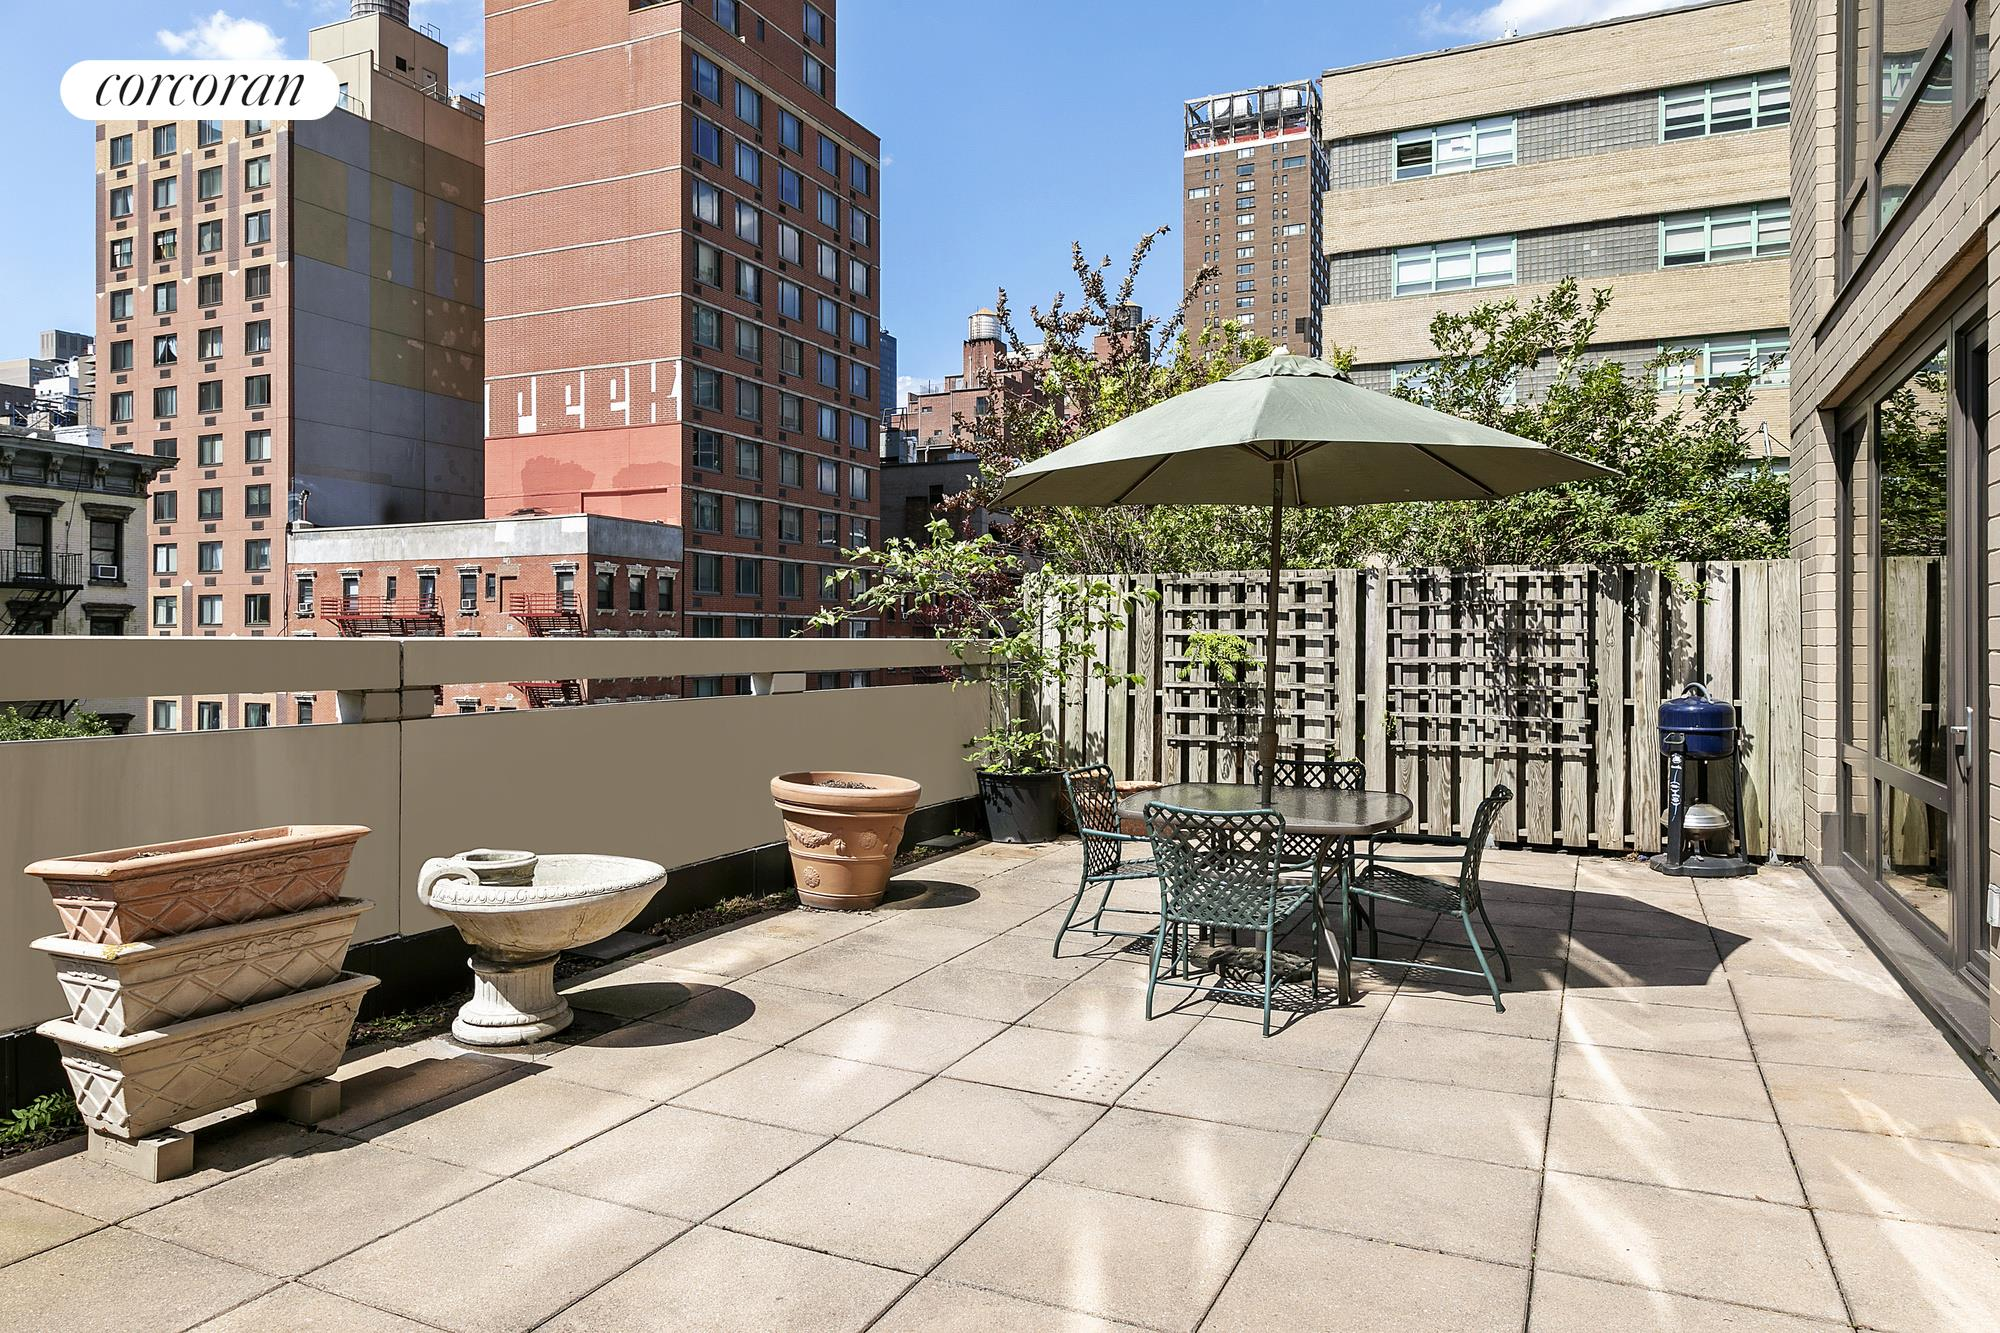 Welcome to this rarely available convertible two-bedroom, one-and-a-half-bathroom home with 710 square feet of private outdoor space. Located at Bridge Tower Place on the corner of 60th Street and 1st Avenue, this residence is one of only four apartments on the floor and provides a gracious 1,108 square feet of interior space.As you step into the entry foyer you are immediately welcomed by an abundance of natural light afforded to you by floor-to-ceiling windows with Western exposure. As an added bonus, the windows are already fully outfitted with automatic shades. Off the foyer, you will find the fully equipped kitchen, complete with stainless steel appliances and ample cabinet and counter space to meet all of your cooking needs. After passing through the kitchen's swinging doors, you will find yourself in a space that is currently configured as a full-sized dining room, but which has the added versatility of being converted into a second bedroom or home office. Located off the foyer is the powder room with a discretely hidden in-unit washer/dryer.After making your way through the generously proportioned living room with one of two entrances onto the outdoor terrace, you will enter the king-size master bedroom. In addition to a sizeable walk-in-closet, additional storage space is provided by attractive built-ins. The master bedroom has its own ensuite with a stall shower, separate soaking tub and large marble vanity.While the apartment interior is enough to entice the most discerning tenant, the real jewel of this unit is the large private outdoor terrace with plenty of room for custom planters and separate outdoor dining and living spaces. This is a true oasis in the heart of all that the East Side has to offer.Bridge Tower Place is a full-service condominium with a 24-hour doorman, separate landscaped roof terrace, state-of-the-art gym, kids' playroom, additional laundry facilities, in-building parking and resident super. Conveniently located at the intersection 